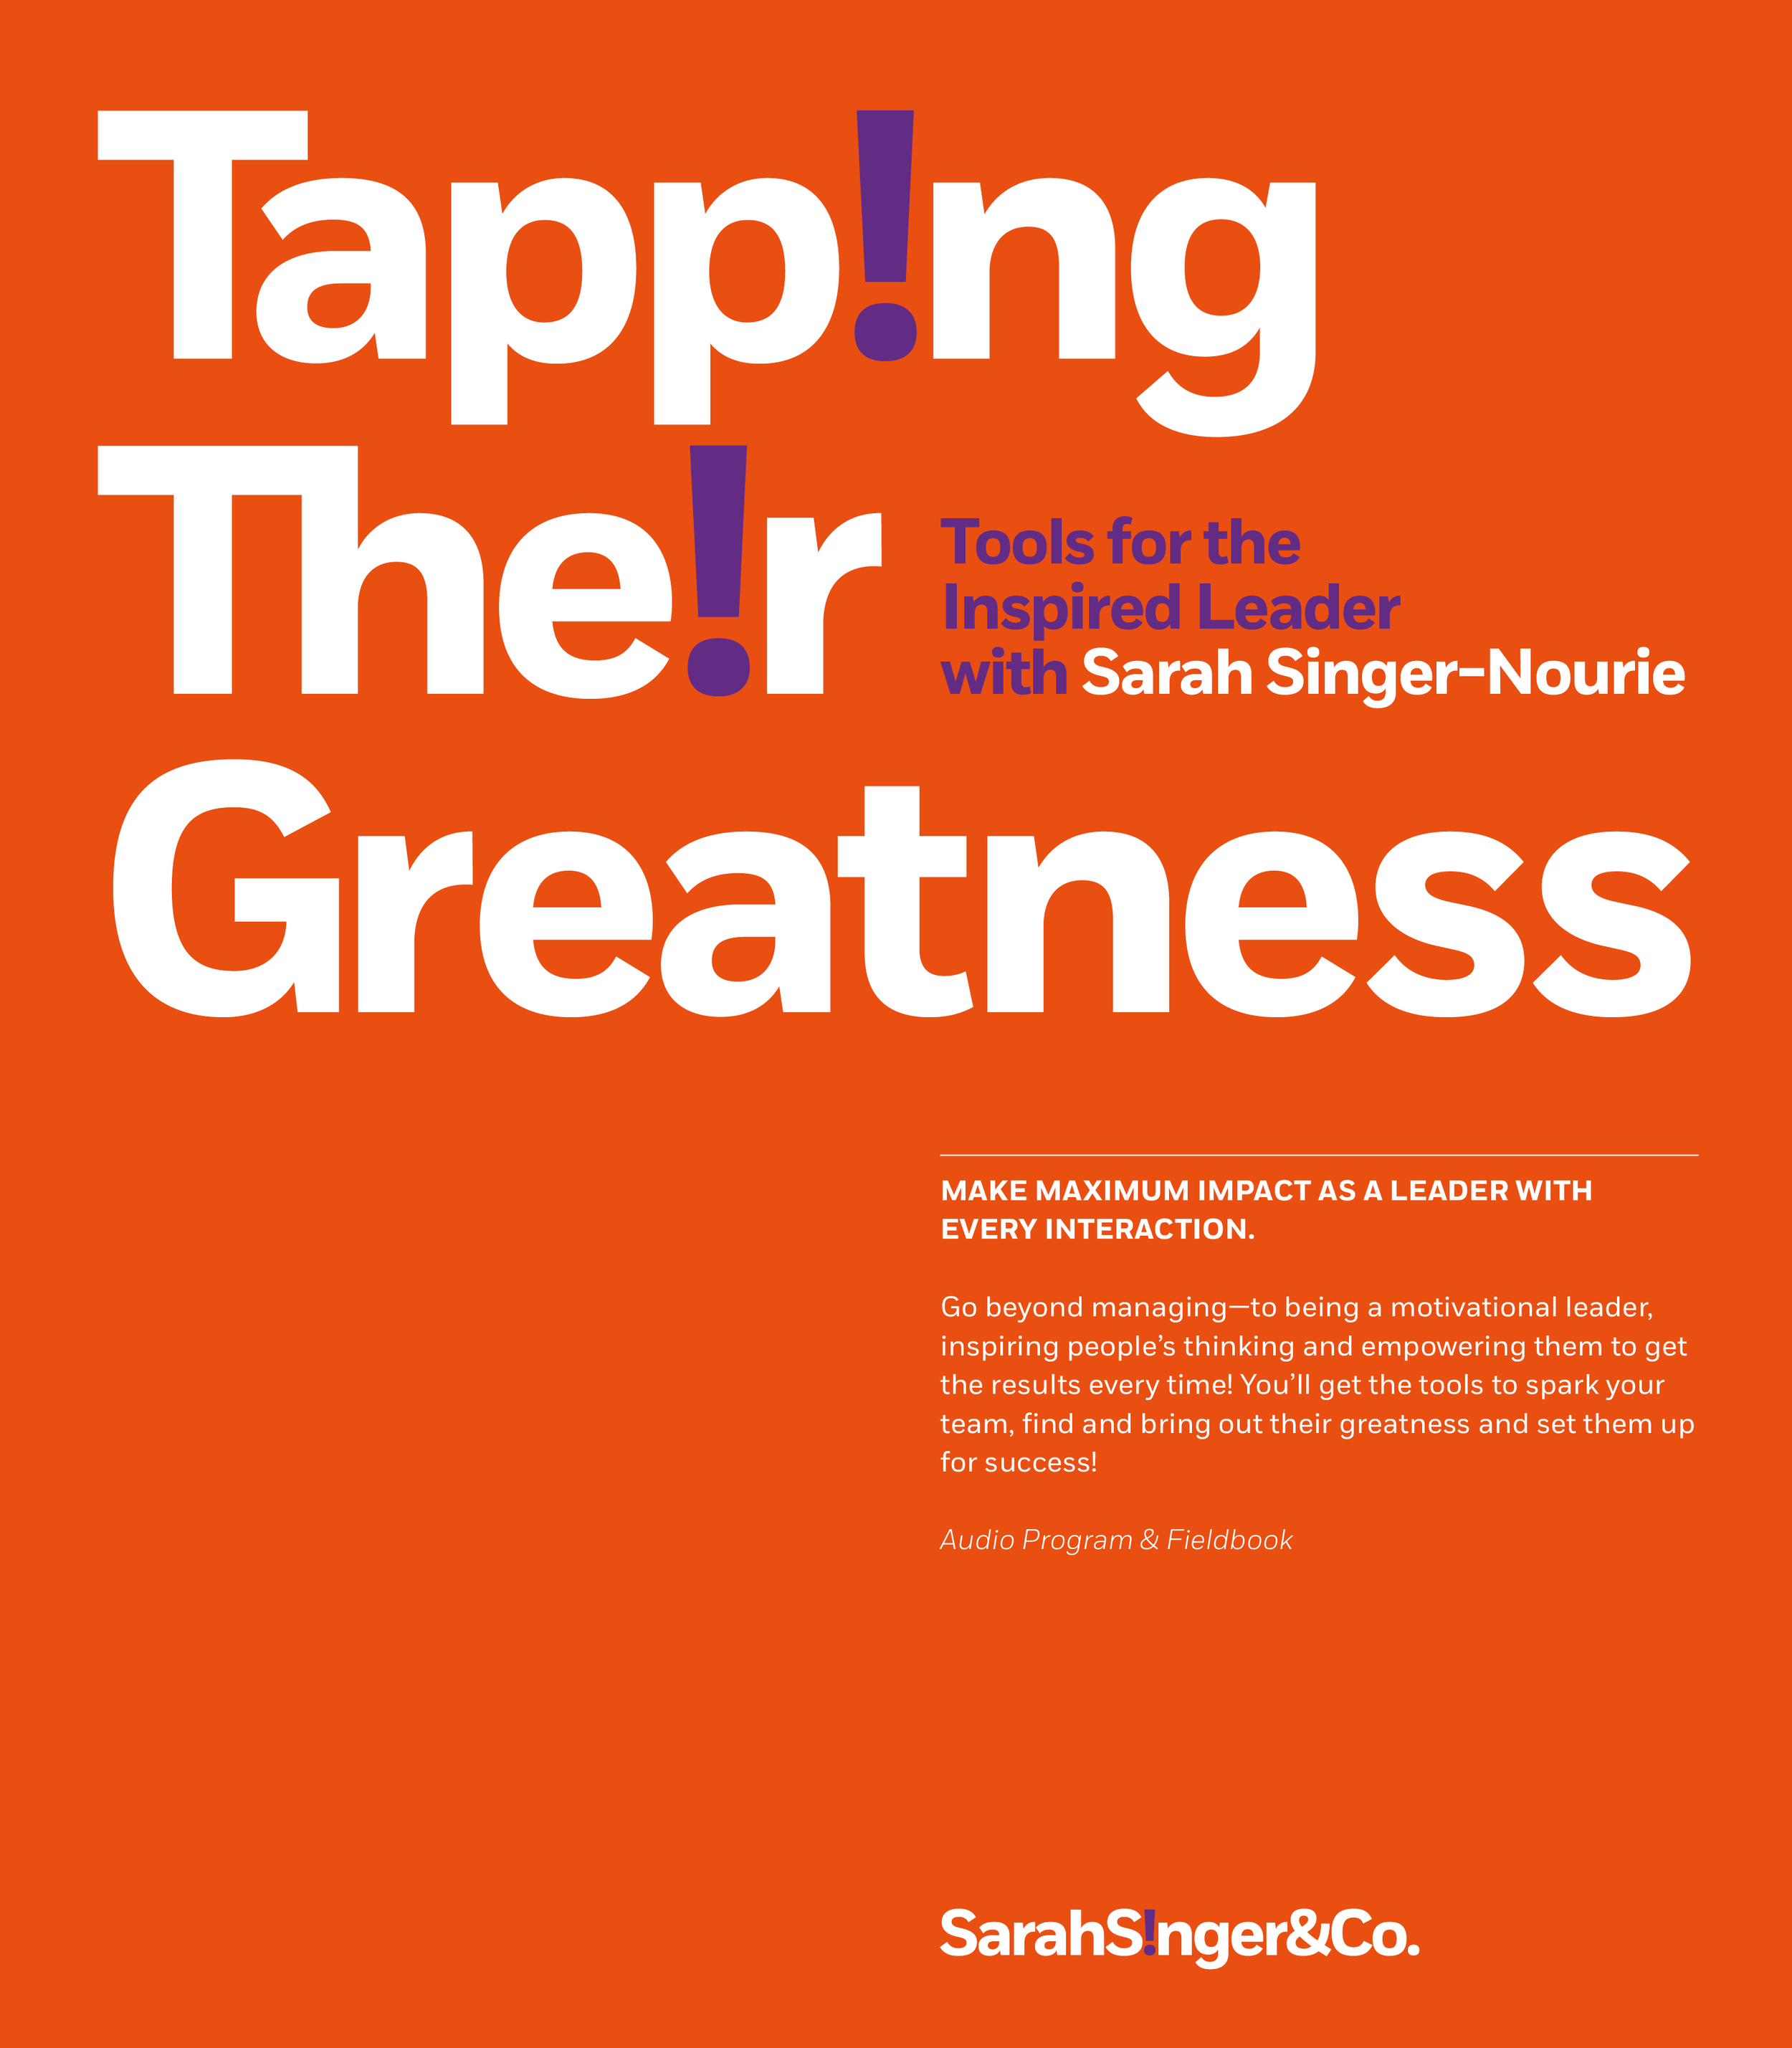 tapping-their-greatness-cover.jpg